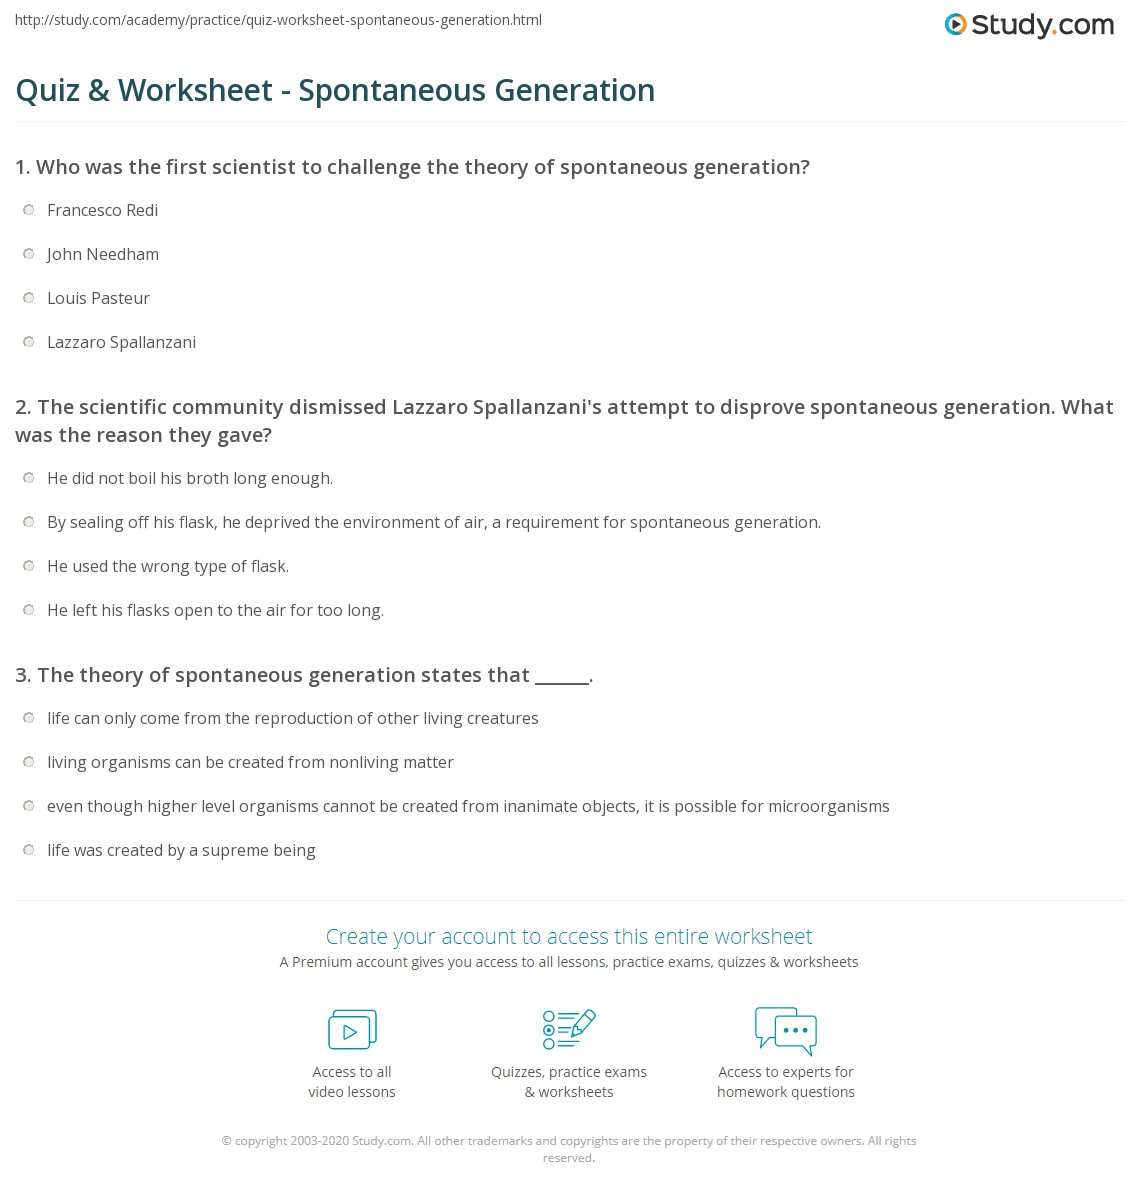 Aldiablosus  Winsome Quiz Amp Worksheet  Spontaneous Generation  Studycom With Magnificent Print Spontaneous Generation Definition Theory Amp Examples Worksheet With Adorable Writing Practice For Kids Worksheet Also Singular To Plural Worksheets In Addition Food Label Analysis Worksheet And Th Grade Music Worksheets As Well As English Comprehension Worksheets For Grade  Additionally Letters Writing Worksheets From Studycom With Aldiablosus  Magnificent Quiz Amp Worksheet  Spontaneous Generation  Studycom With Adorable Print Spontaneous Generation Definition Theory Amp Examples Worksheet And Winsome Writing Practice For Kids Worksheet Also Singular To Plural Worksheets In Addition Food Label Analysis Worksheet From Studycom